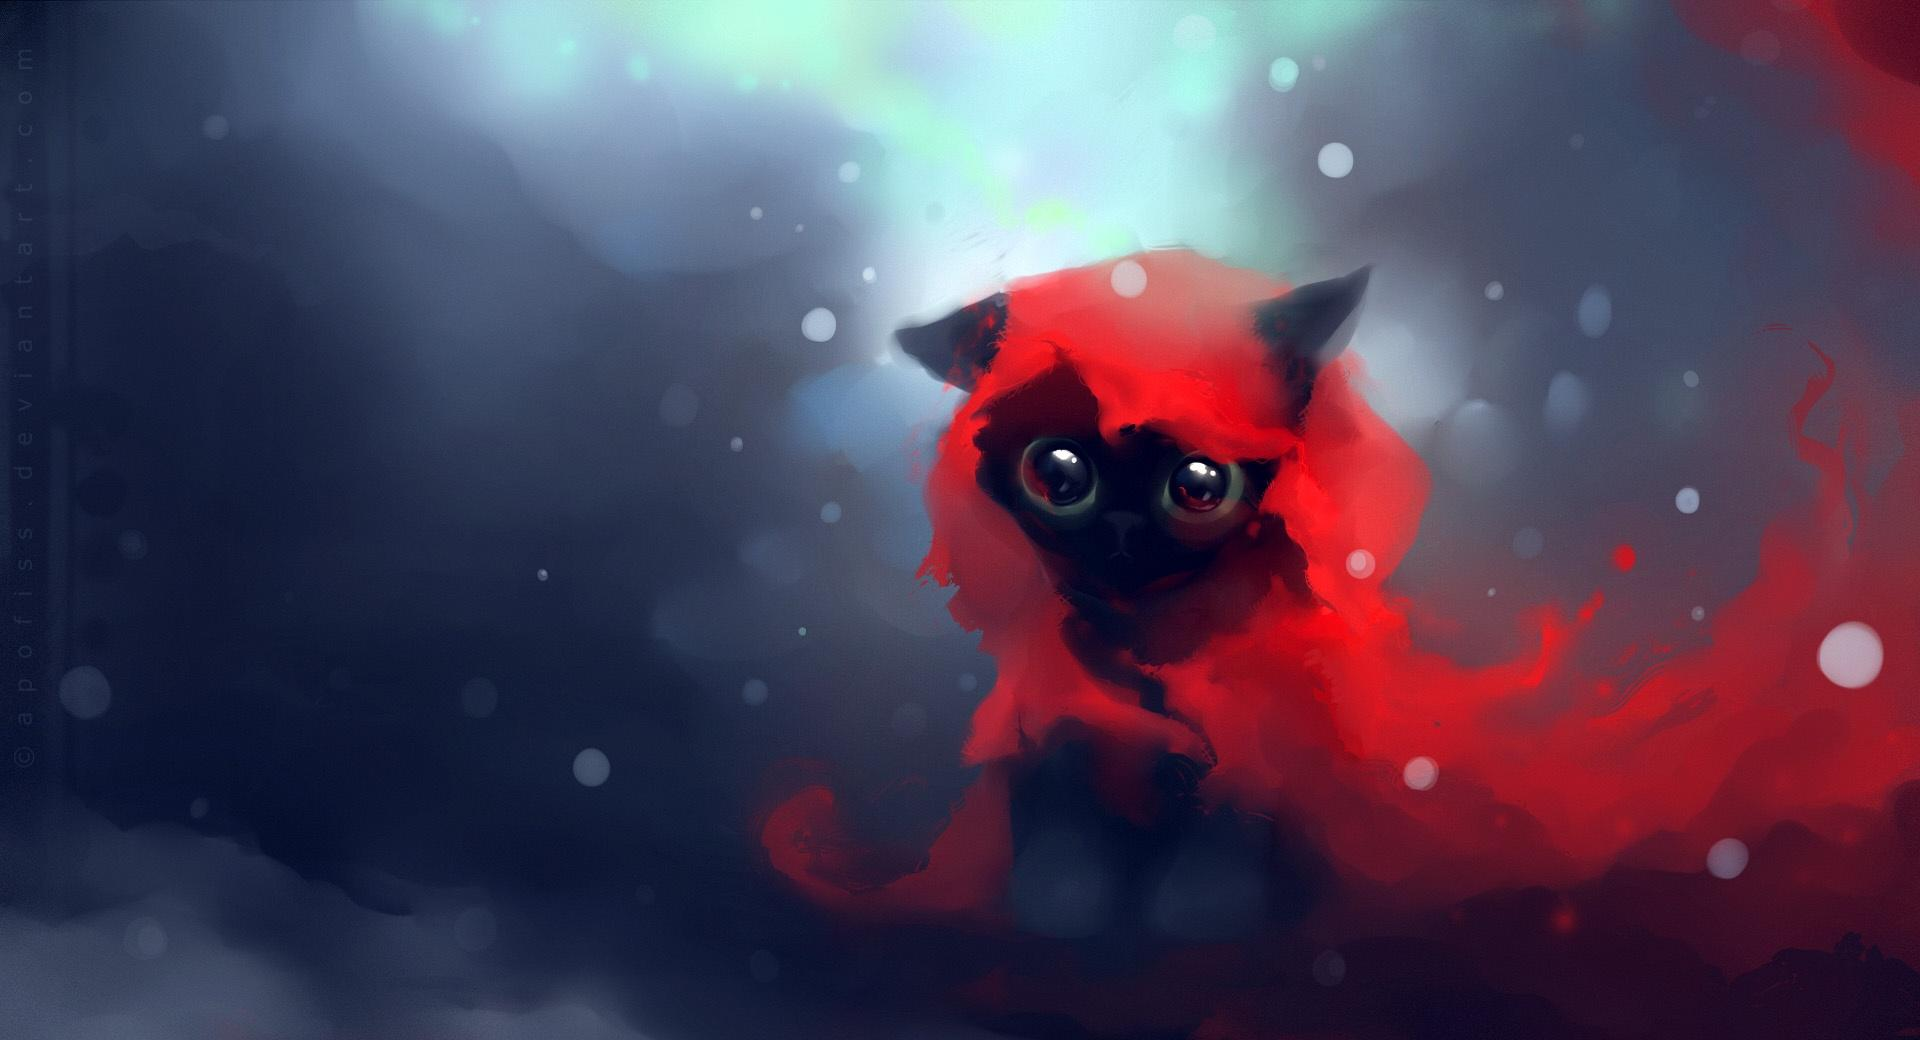 Red Riding Hood Cat wallpapers HD quality